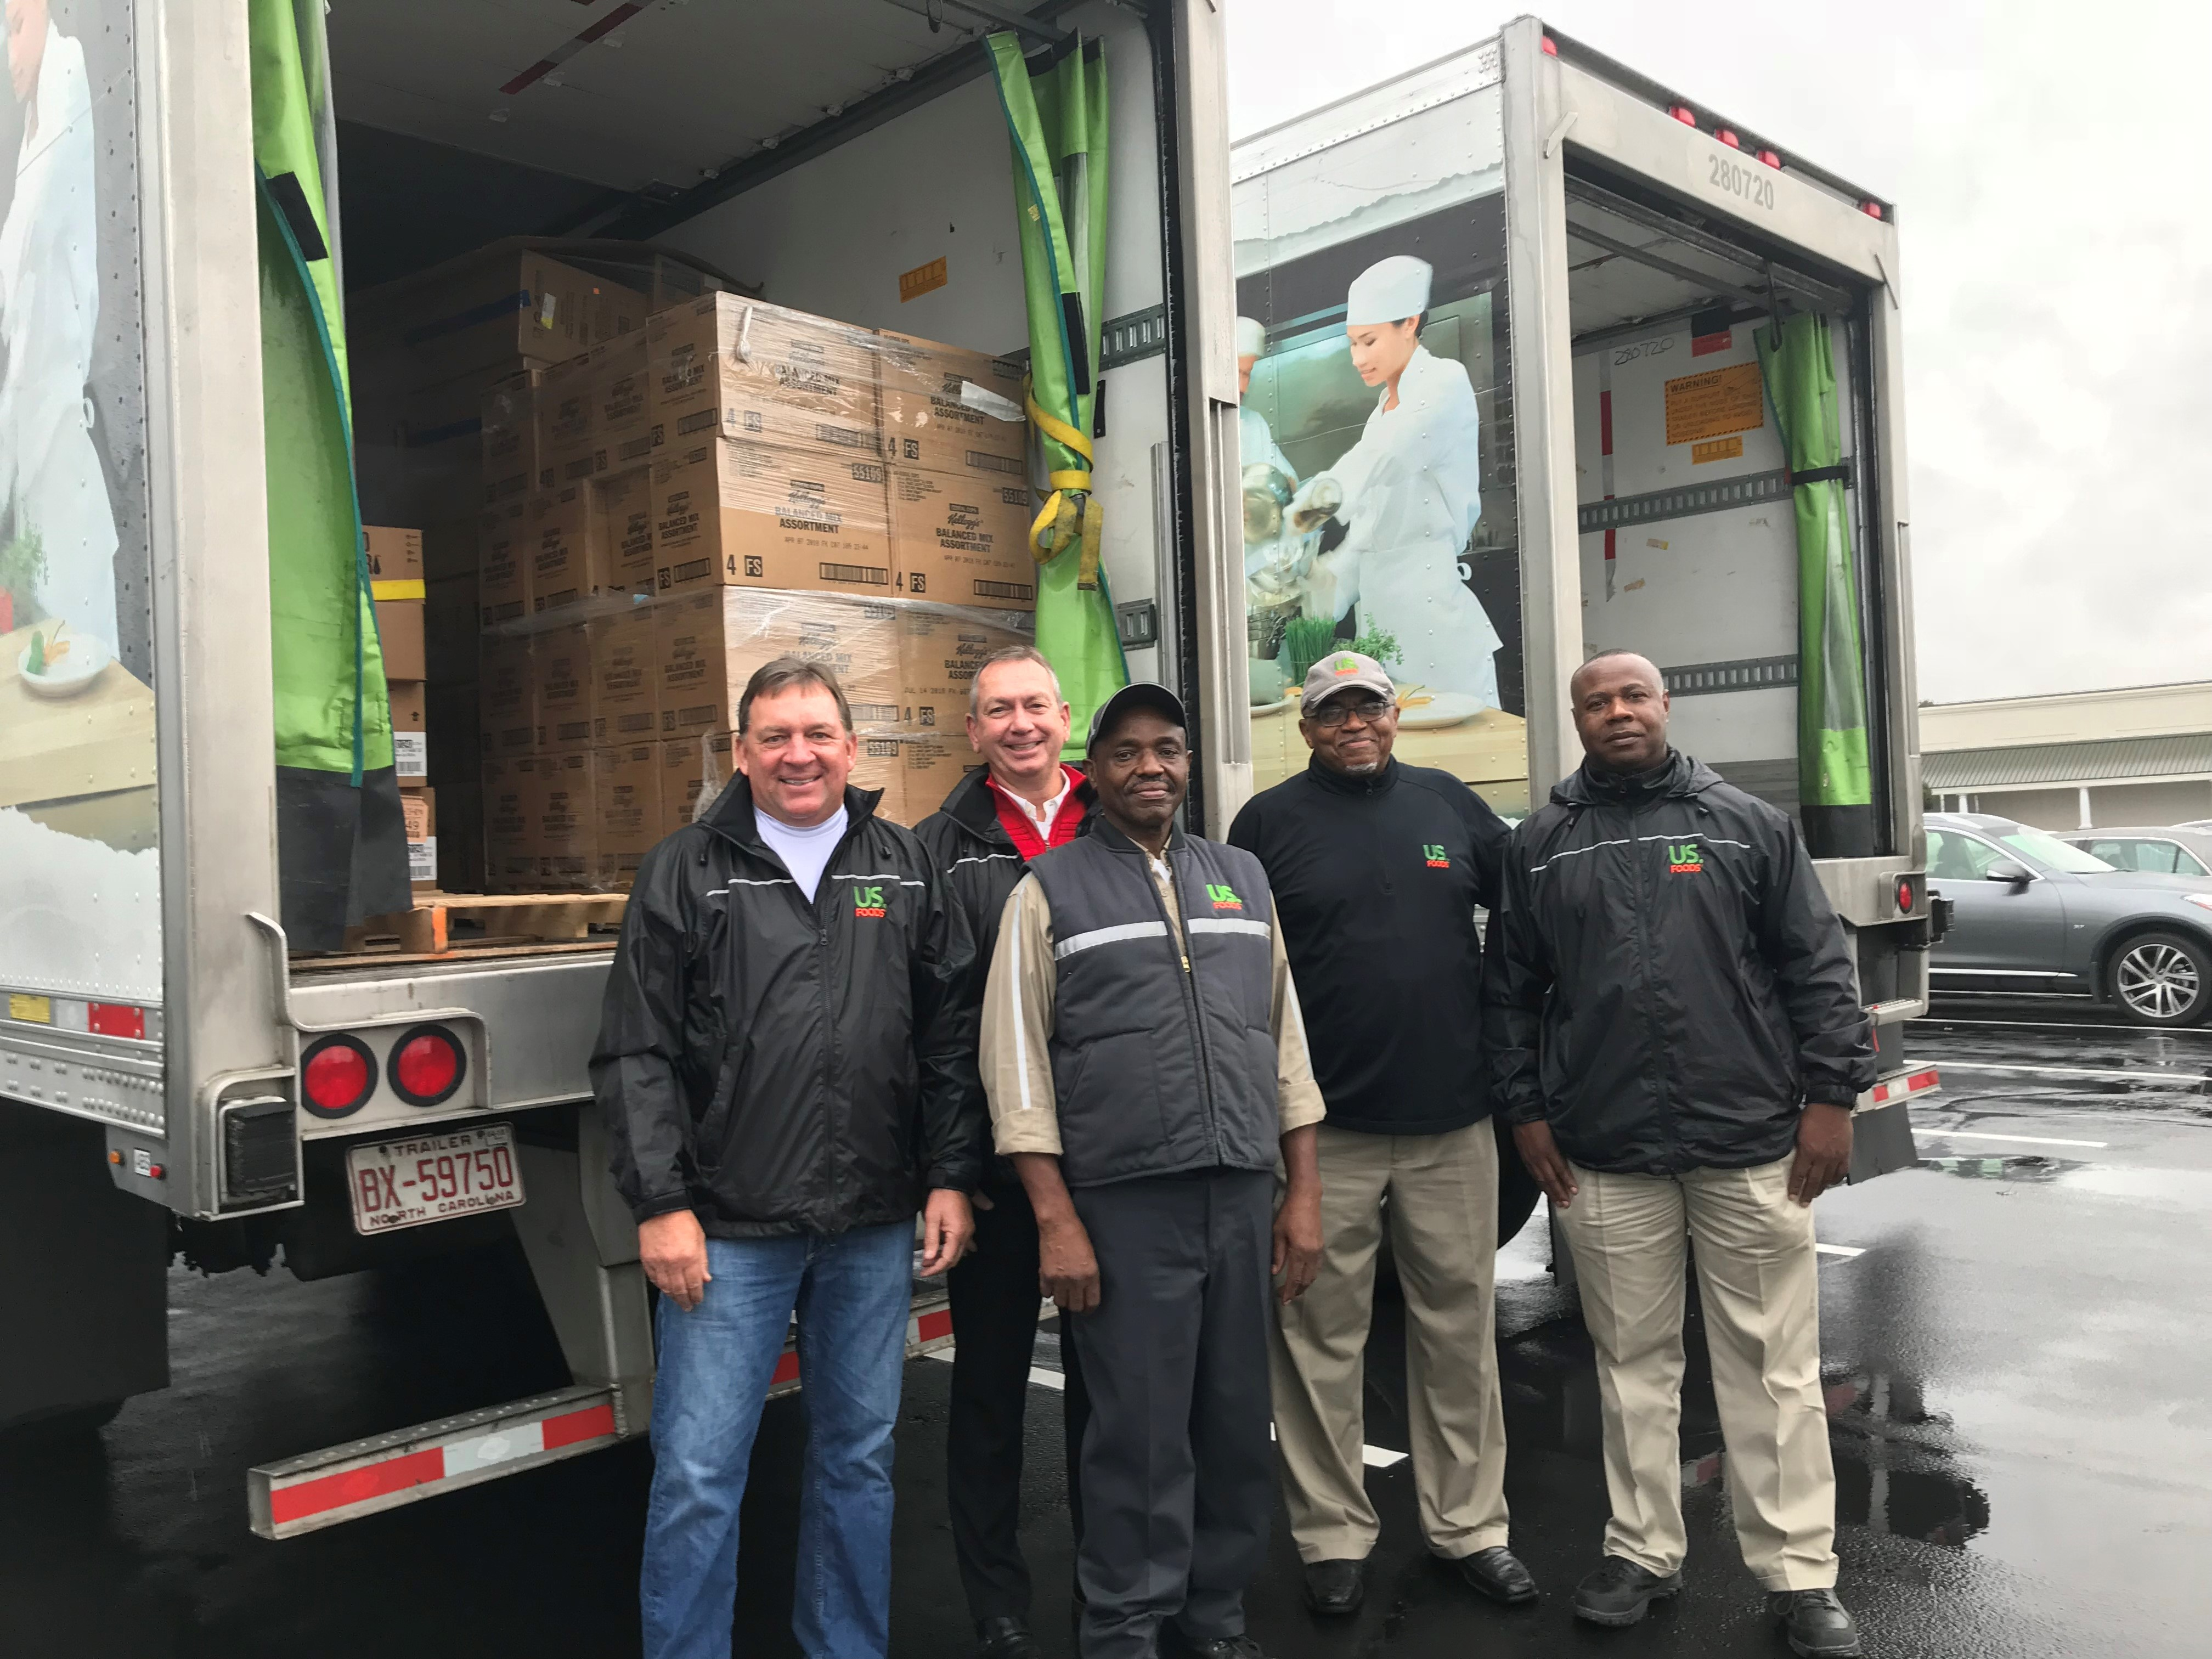 <div class='meta'><div class='origin-logo' data-origin='none'></div><span class='caption-text' data-credit=''>US foods brought a 41 foot truck down to ABC11 Together Food Drive in the Fayetteville drop off location filled with 25,000 pounds worth of product</span></div>